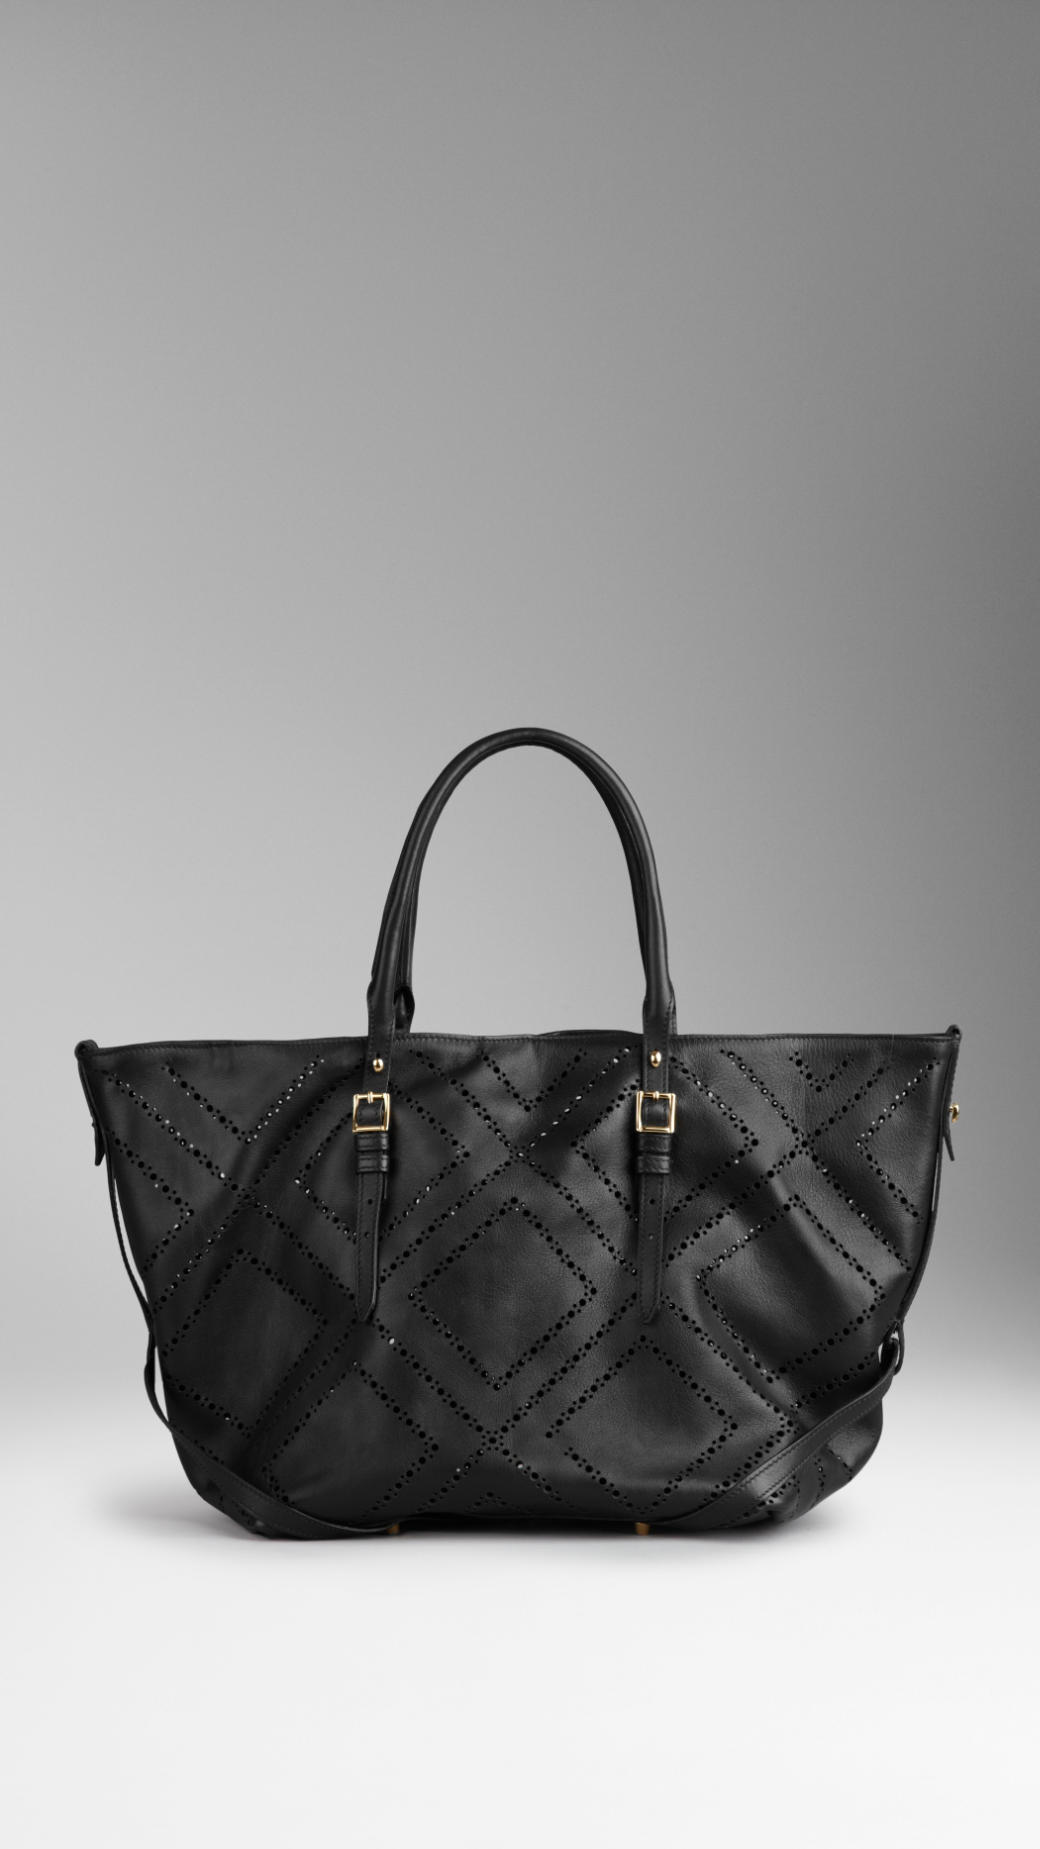 6d8a0ff83ded Lyst - Burberry Medium Brogue Detail Leather Tote Bag in Black